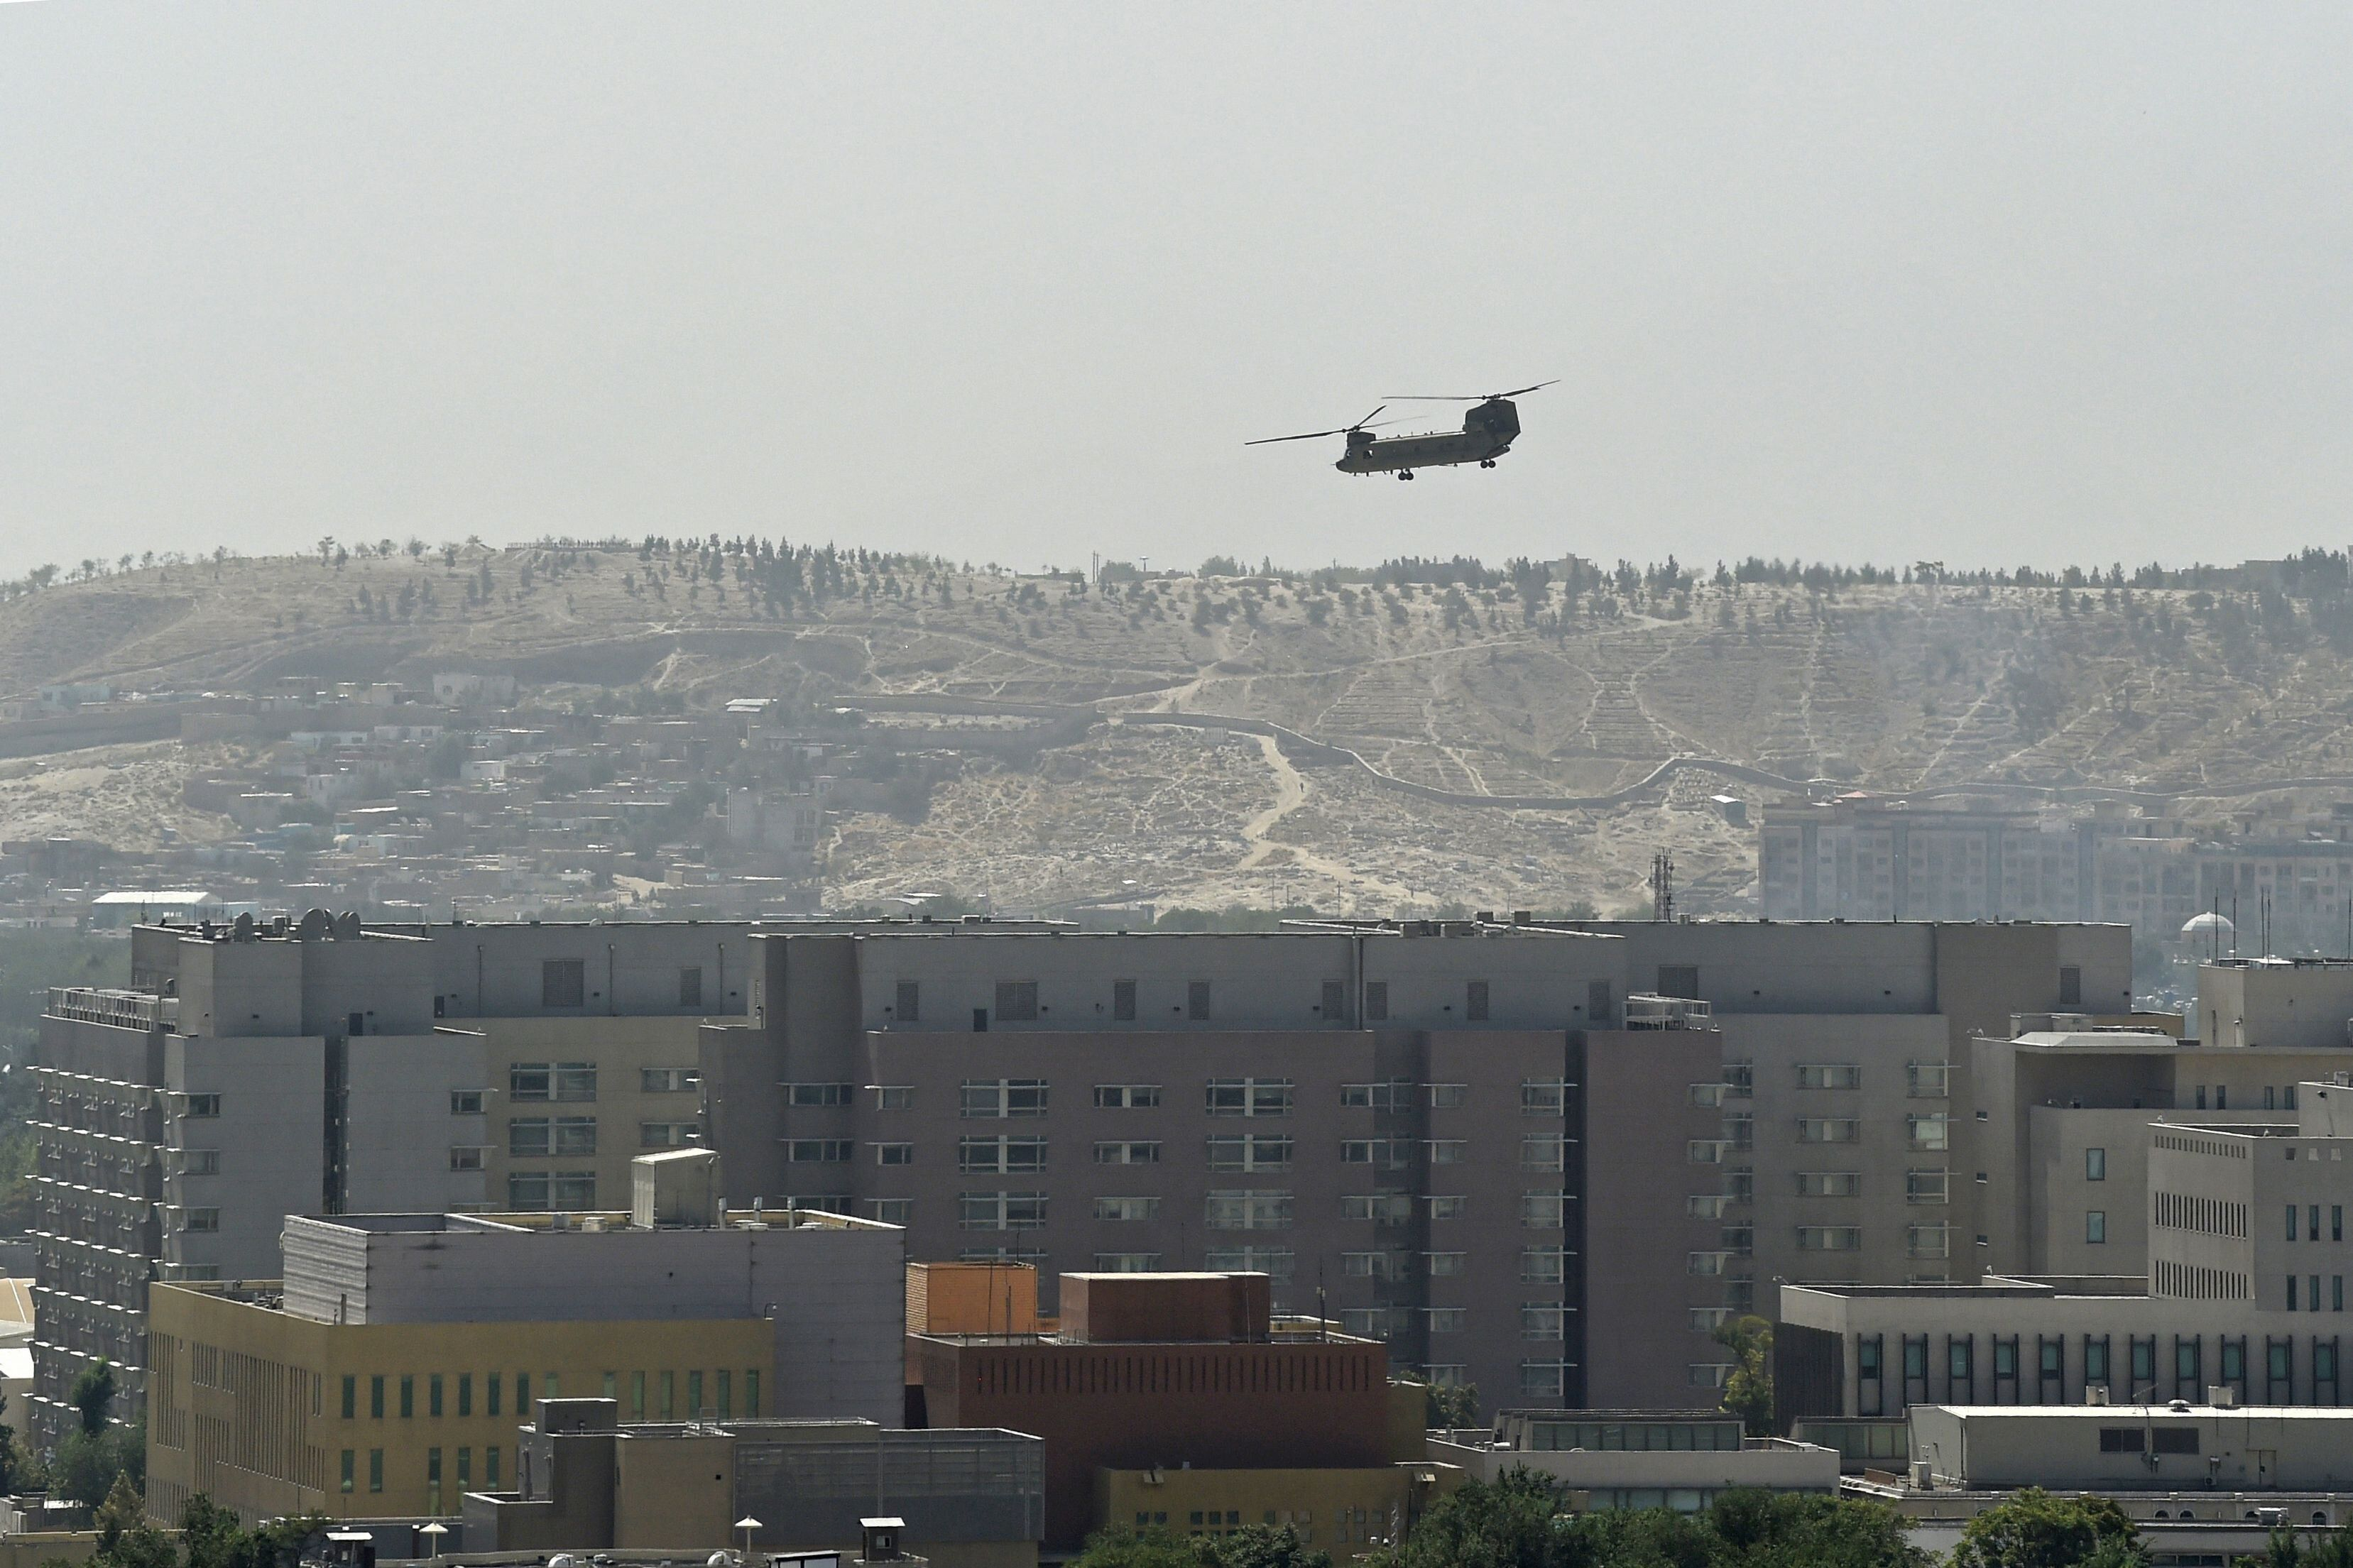 A U.S. Chinook military helicopter flies above the U.S. Embassy in Kabul on Aug. 15, 2021.